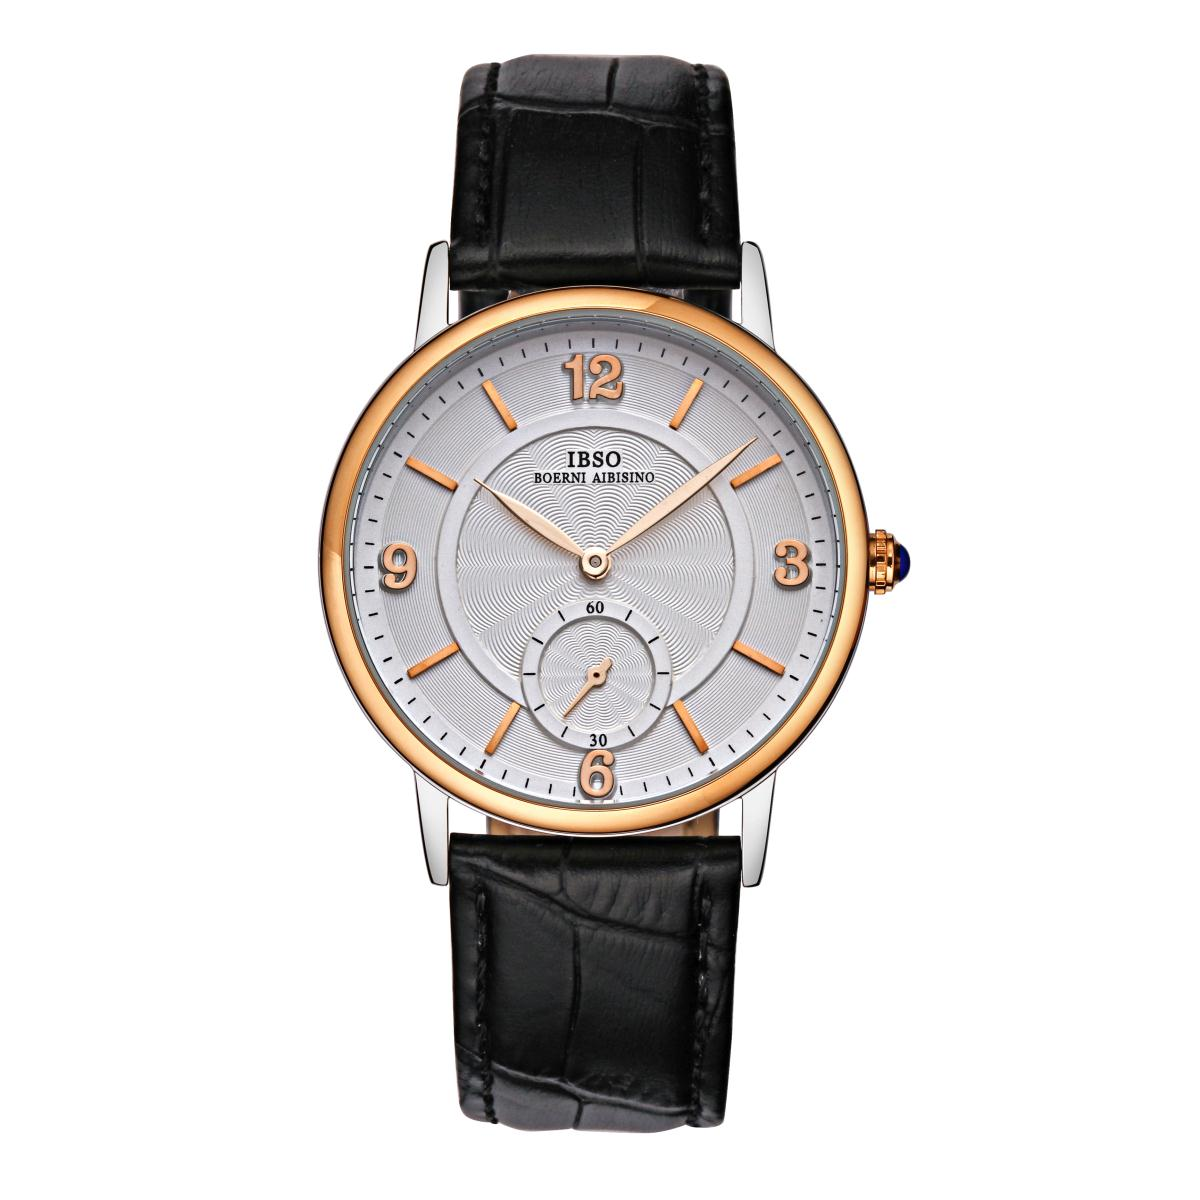 IBSO Top Quality Quartz Watch with Genuine Leather Strap Stick Markers Watch YYP3976